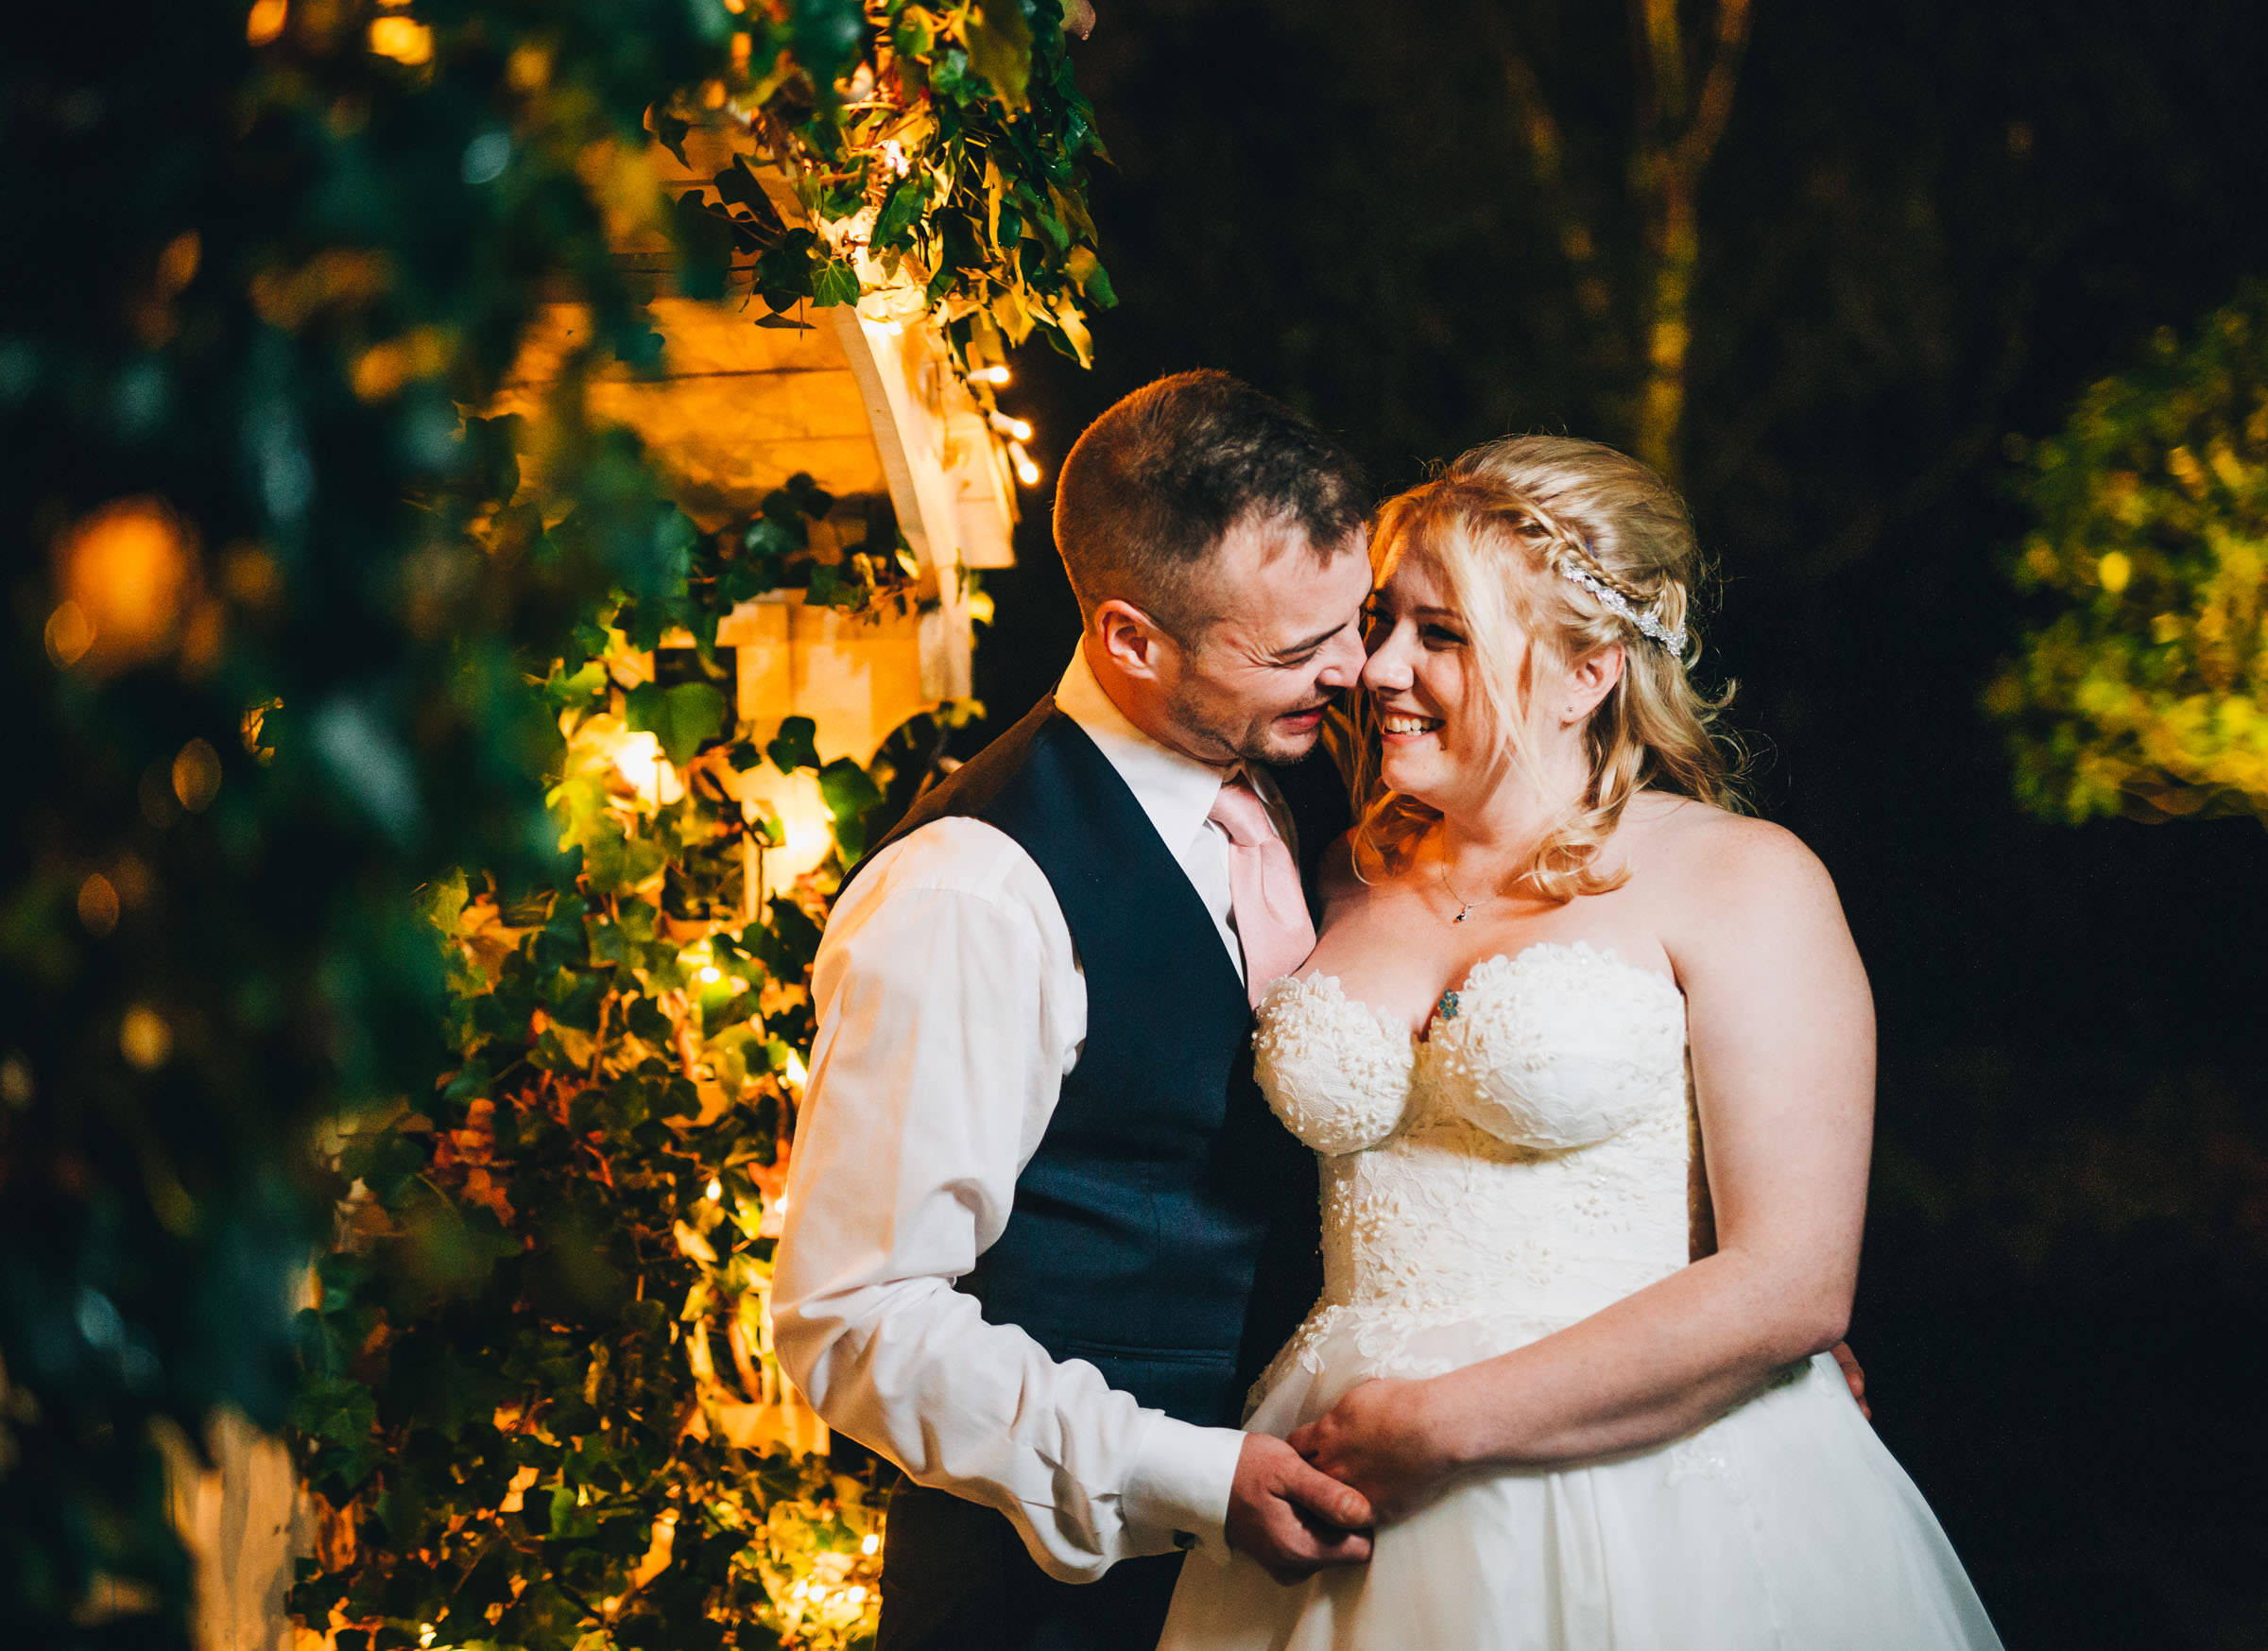 bride and groom - creative wedding pictures